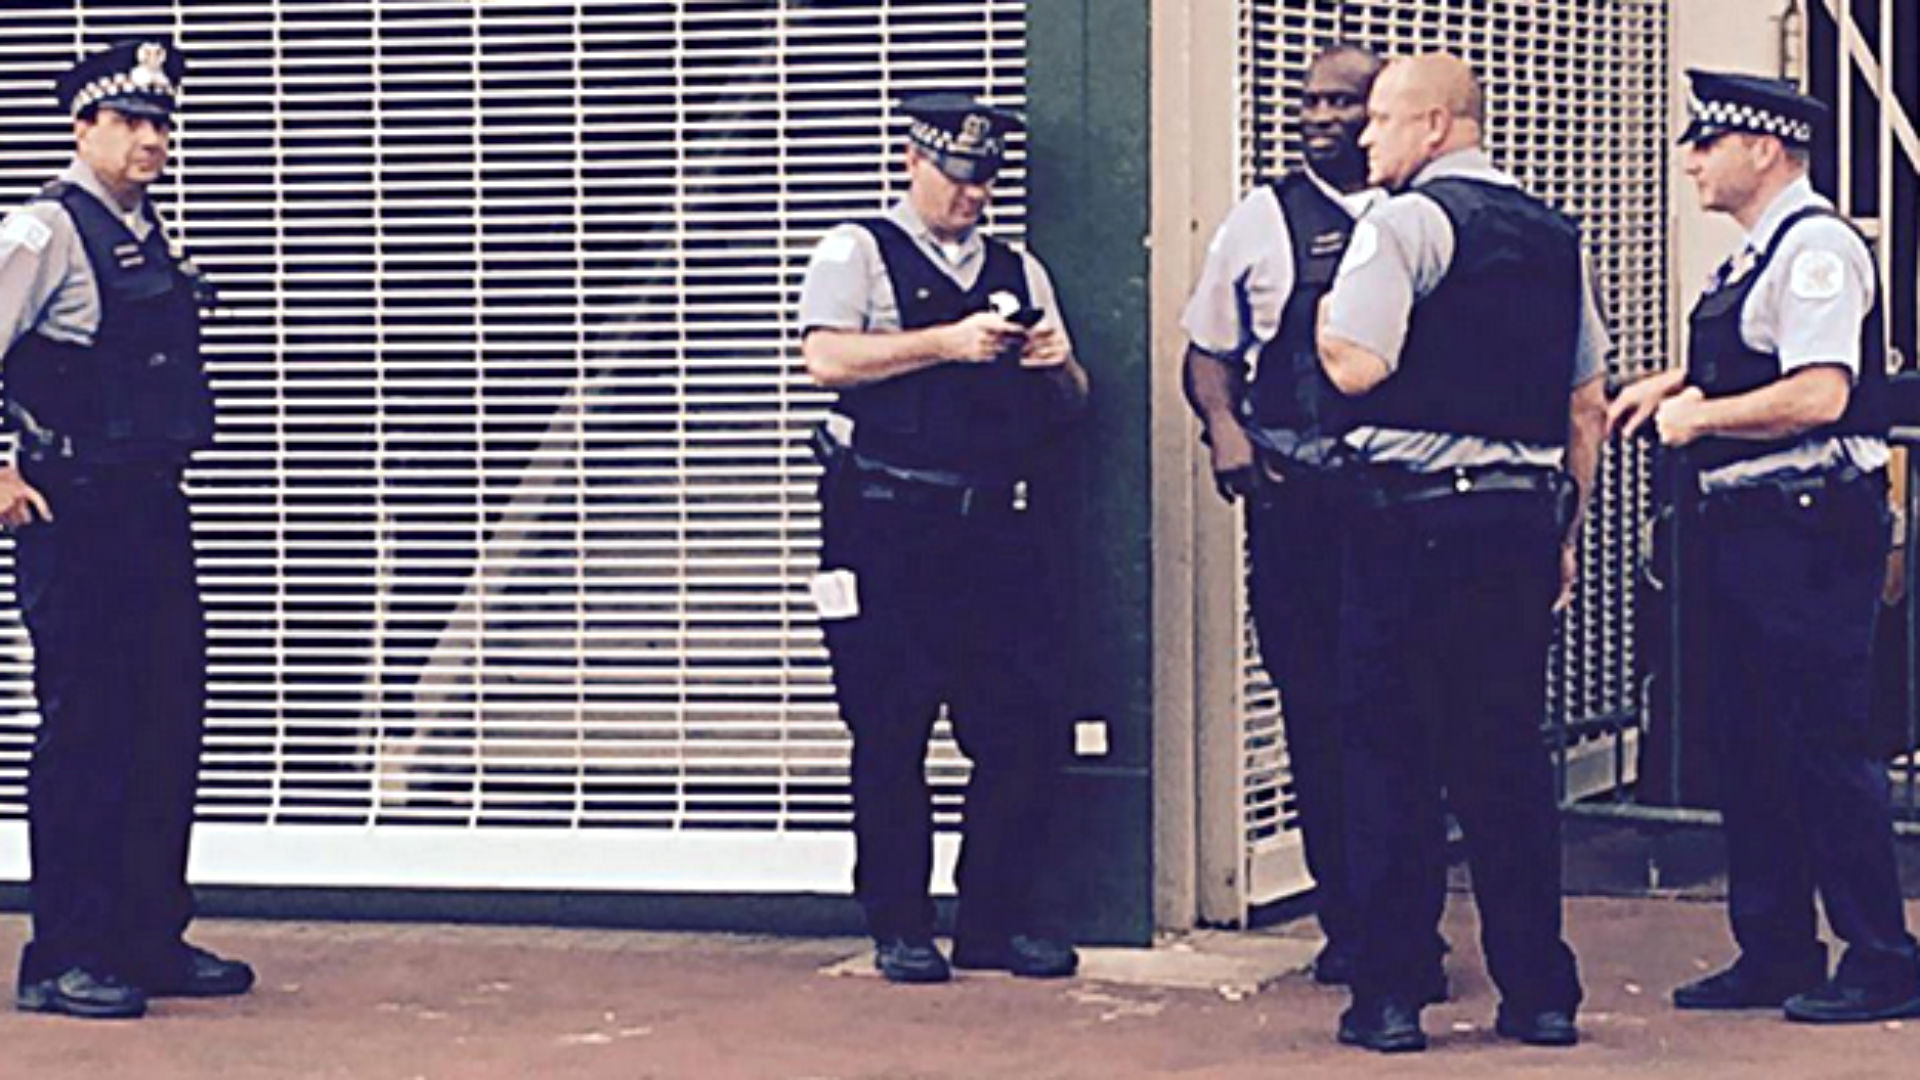 Police investigate bomb threat at Wrigley Field